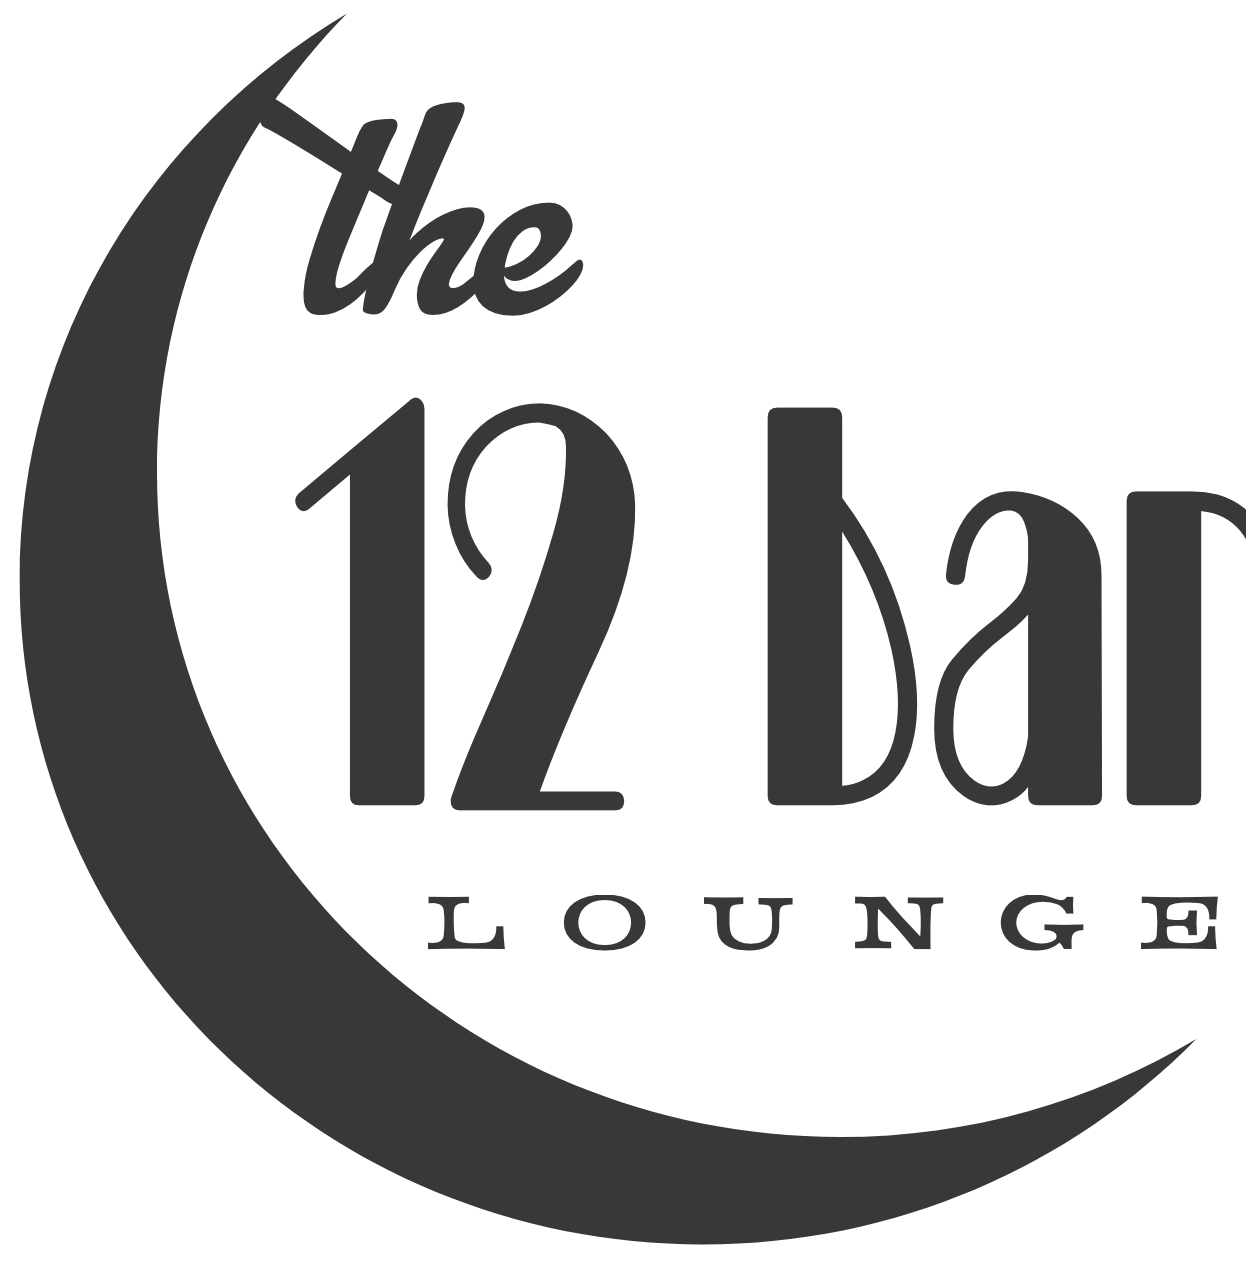 new 12 bar logo black.png